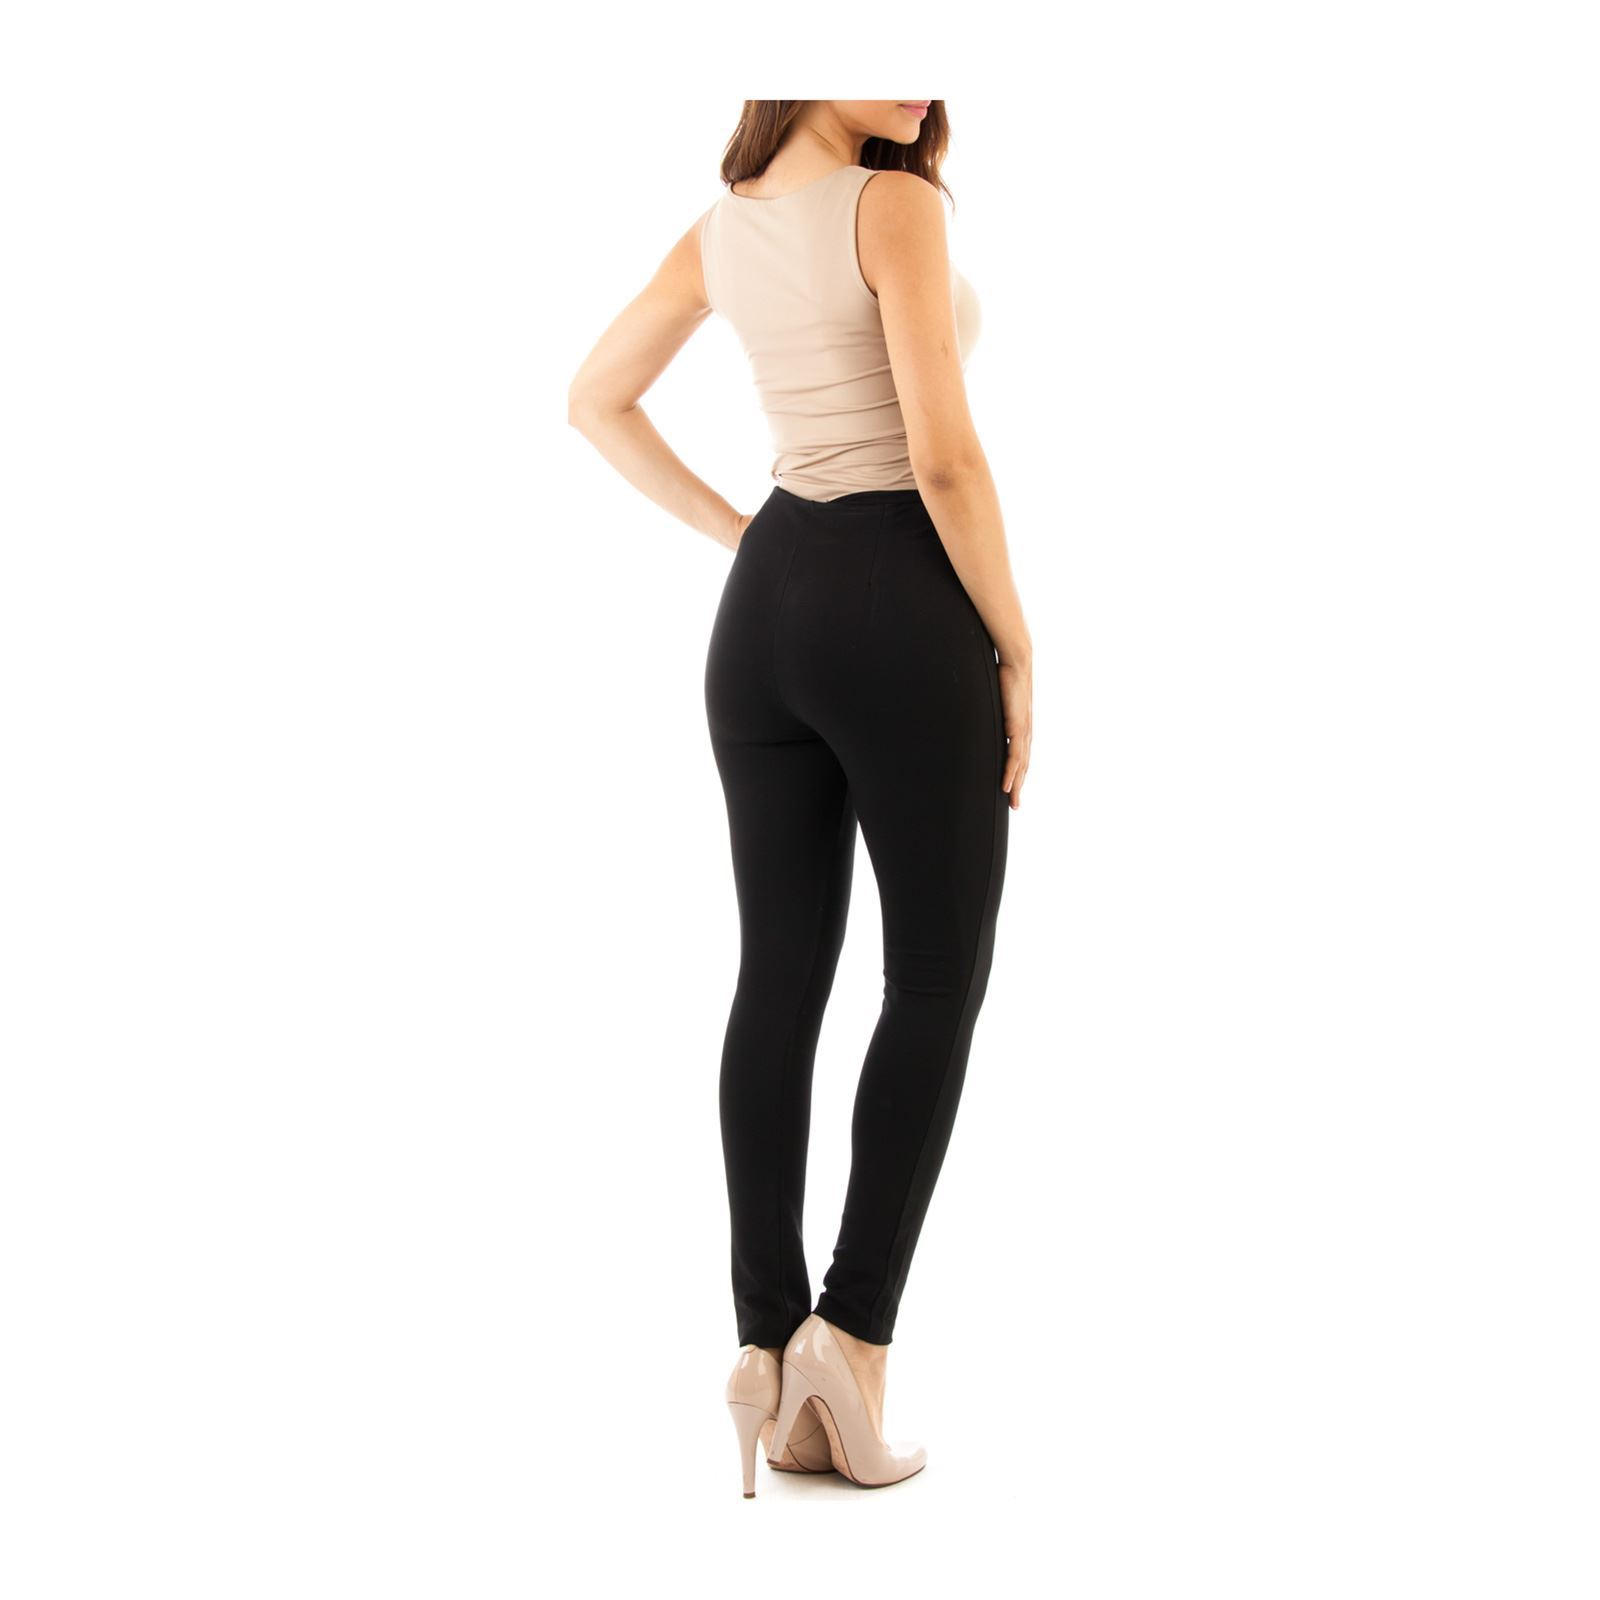 SlimNoir Rose Femme Rose V V Femme SlimNoir Rose SlimNoir qVLMpUzSG